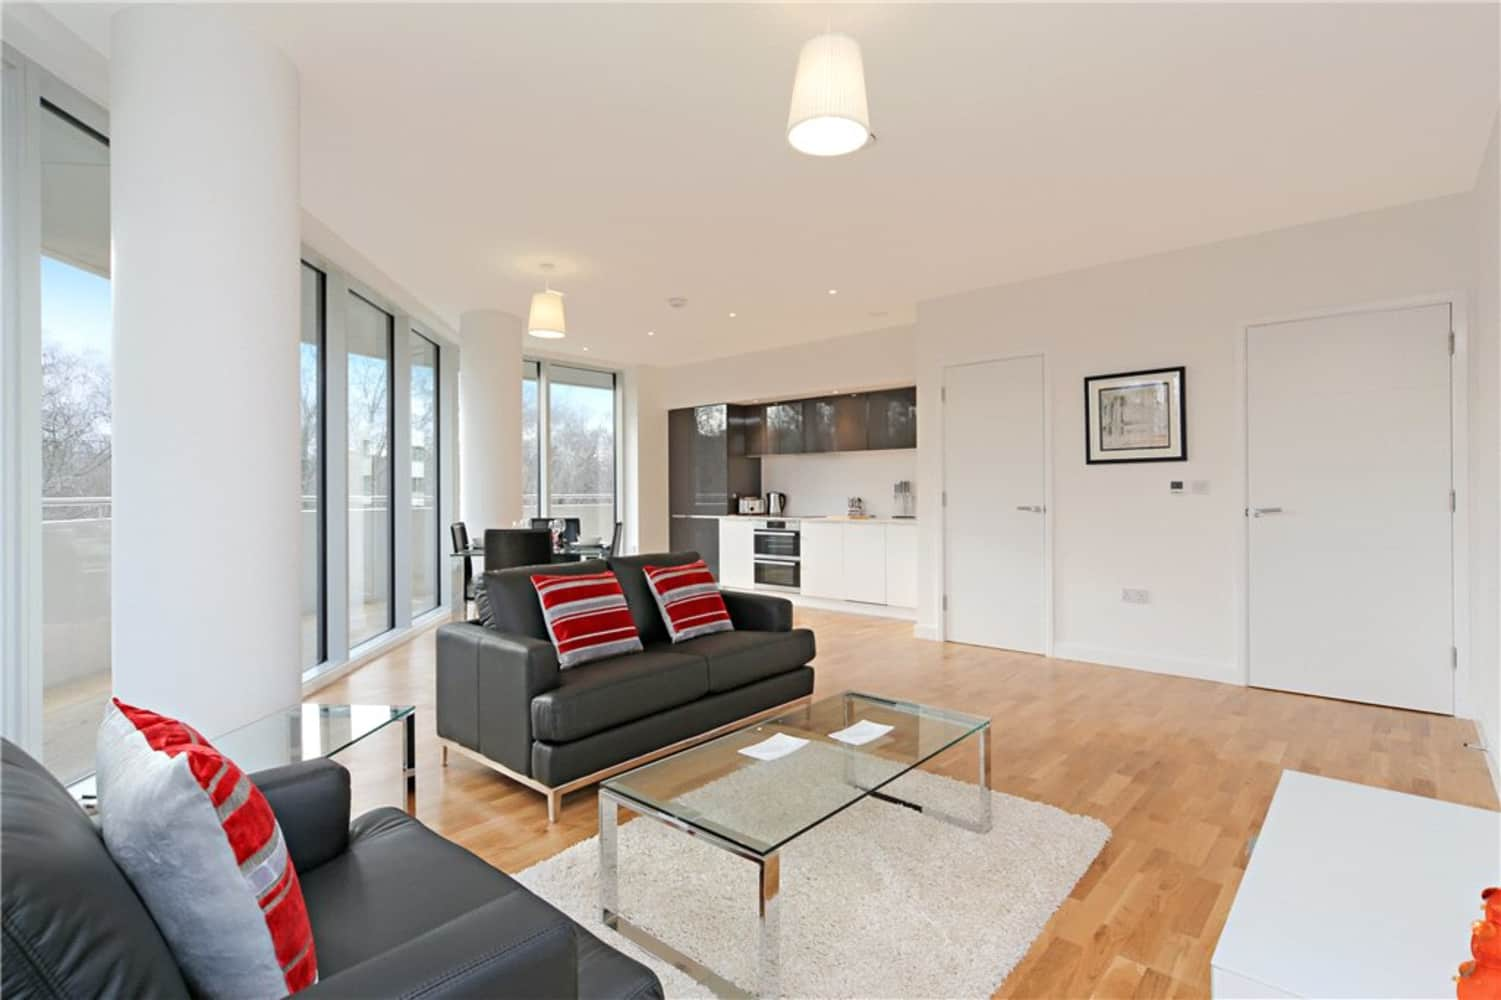 Apartment Chiswick, W4 - Edmunds House Colonial Drive W4 - 03